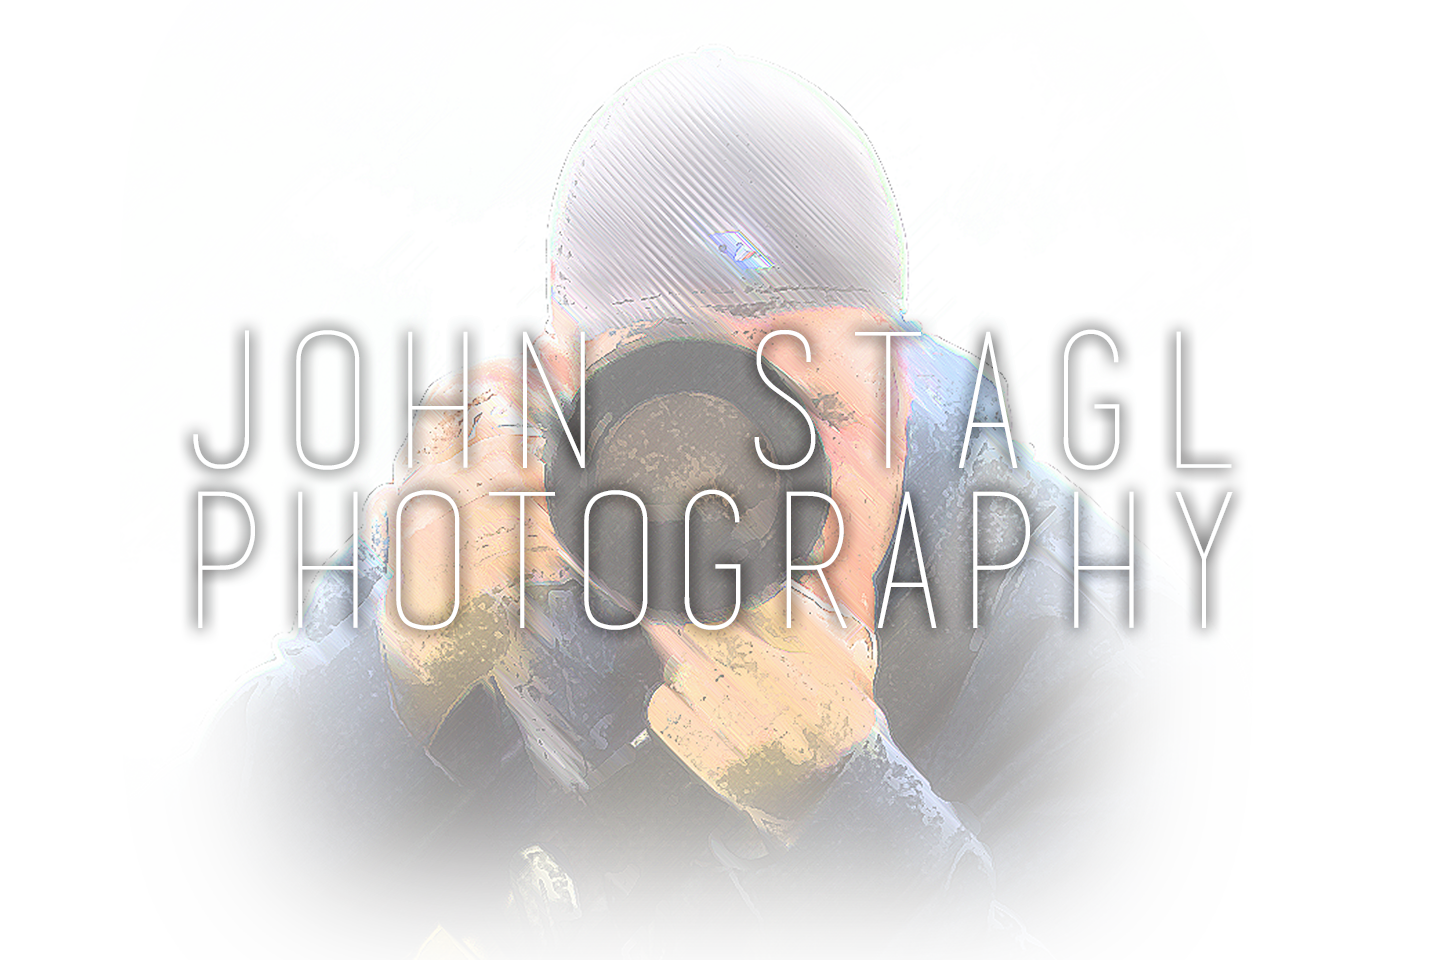 John Stagl Photography, capturing family pictures, memories, and milestones with the click of a shutter.